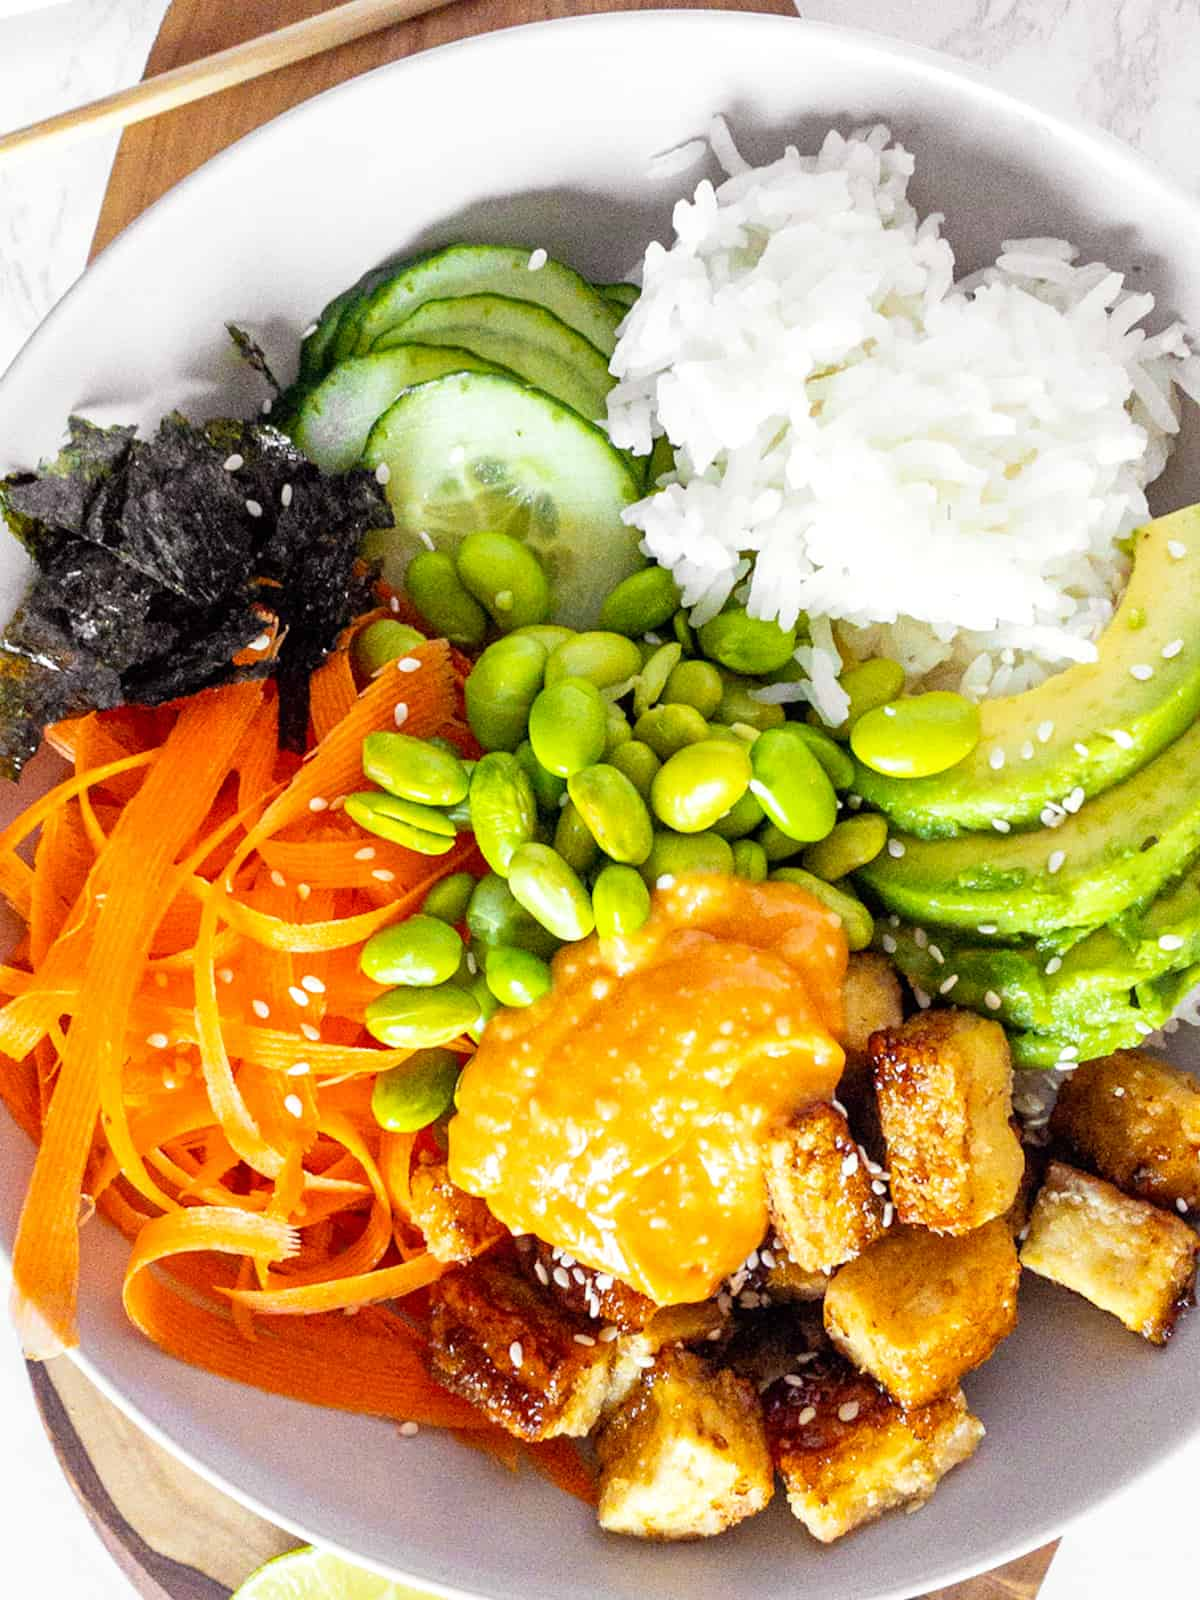 a close-up photo of a sushi bowl with tofu, carrot, cucumber, and edamame